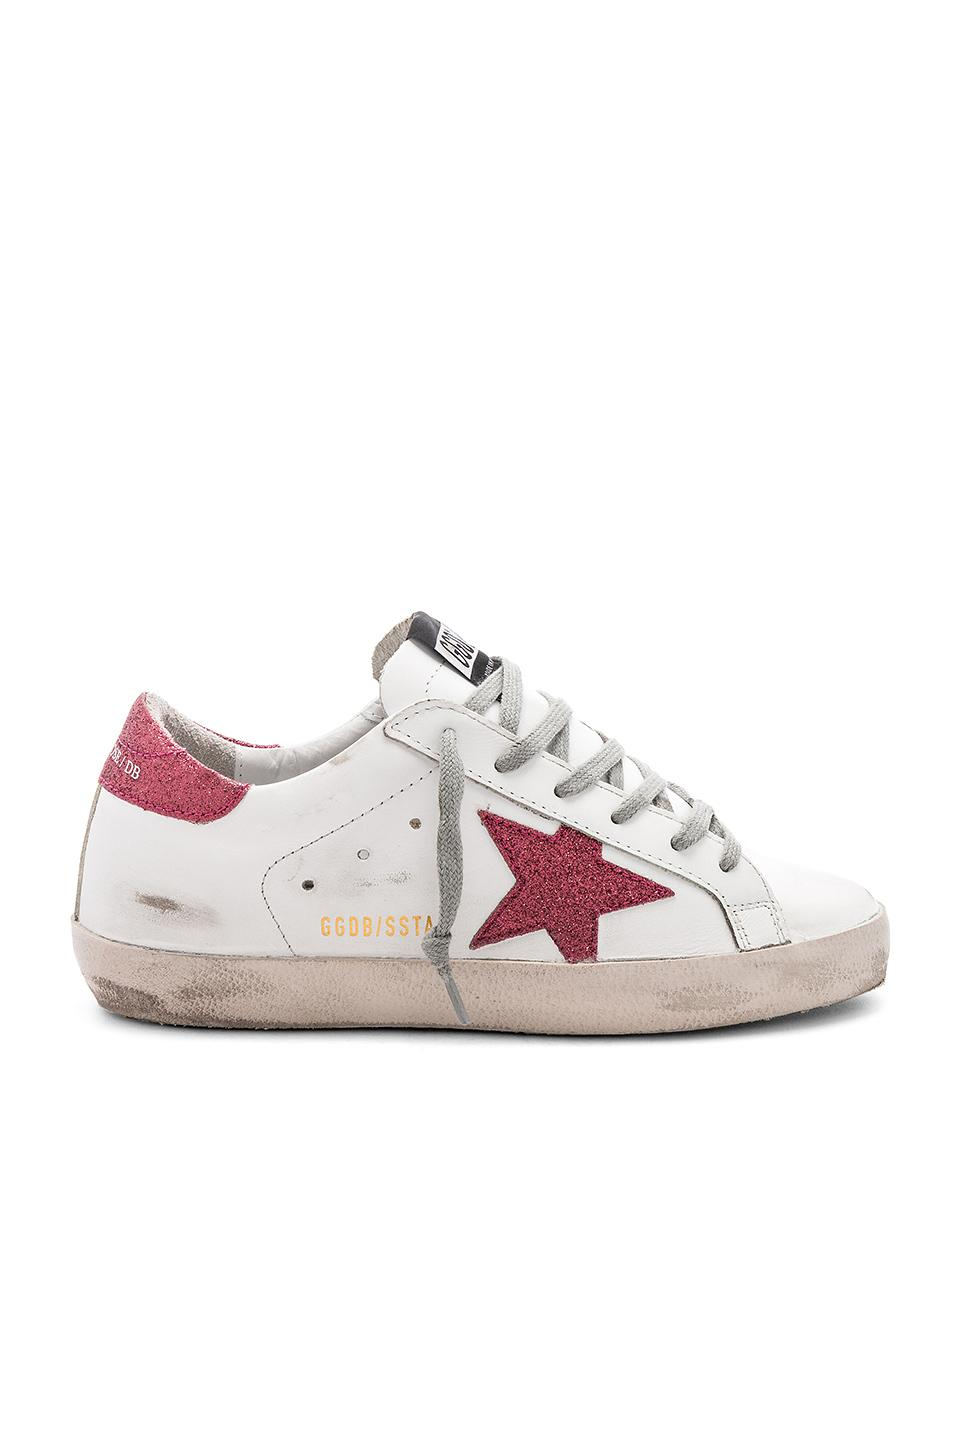 Golden Goose Superstar Sneaker In White/rose Glitter